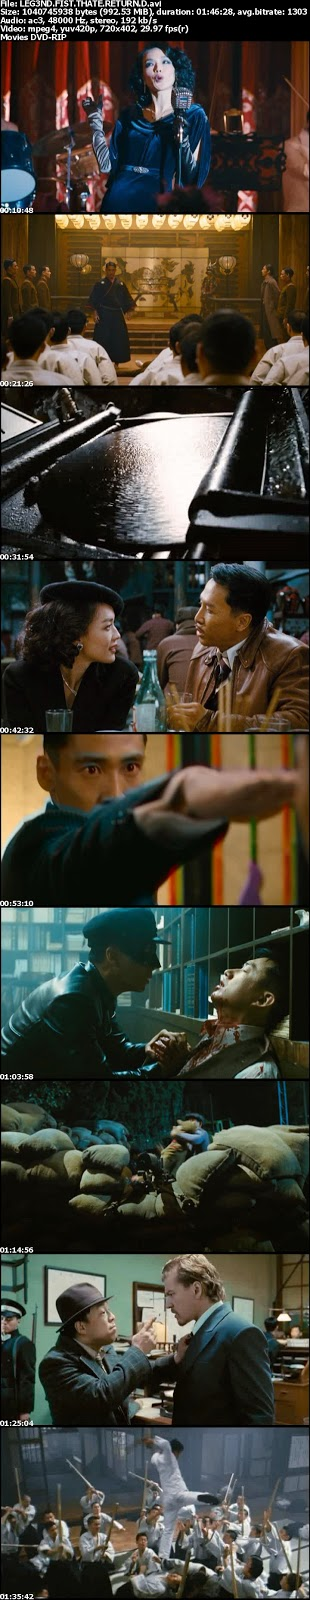 Legend of the Fist: The Return of Chen Zhen [2010][DvdRip][Latino] (peliculas hd )